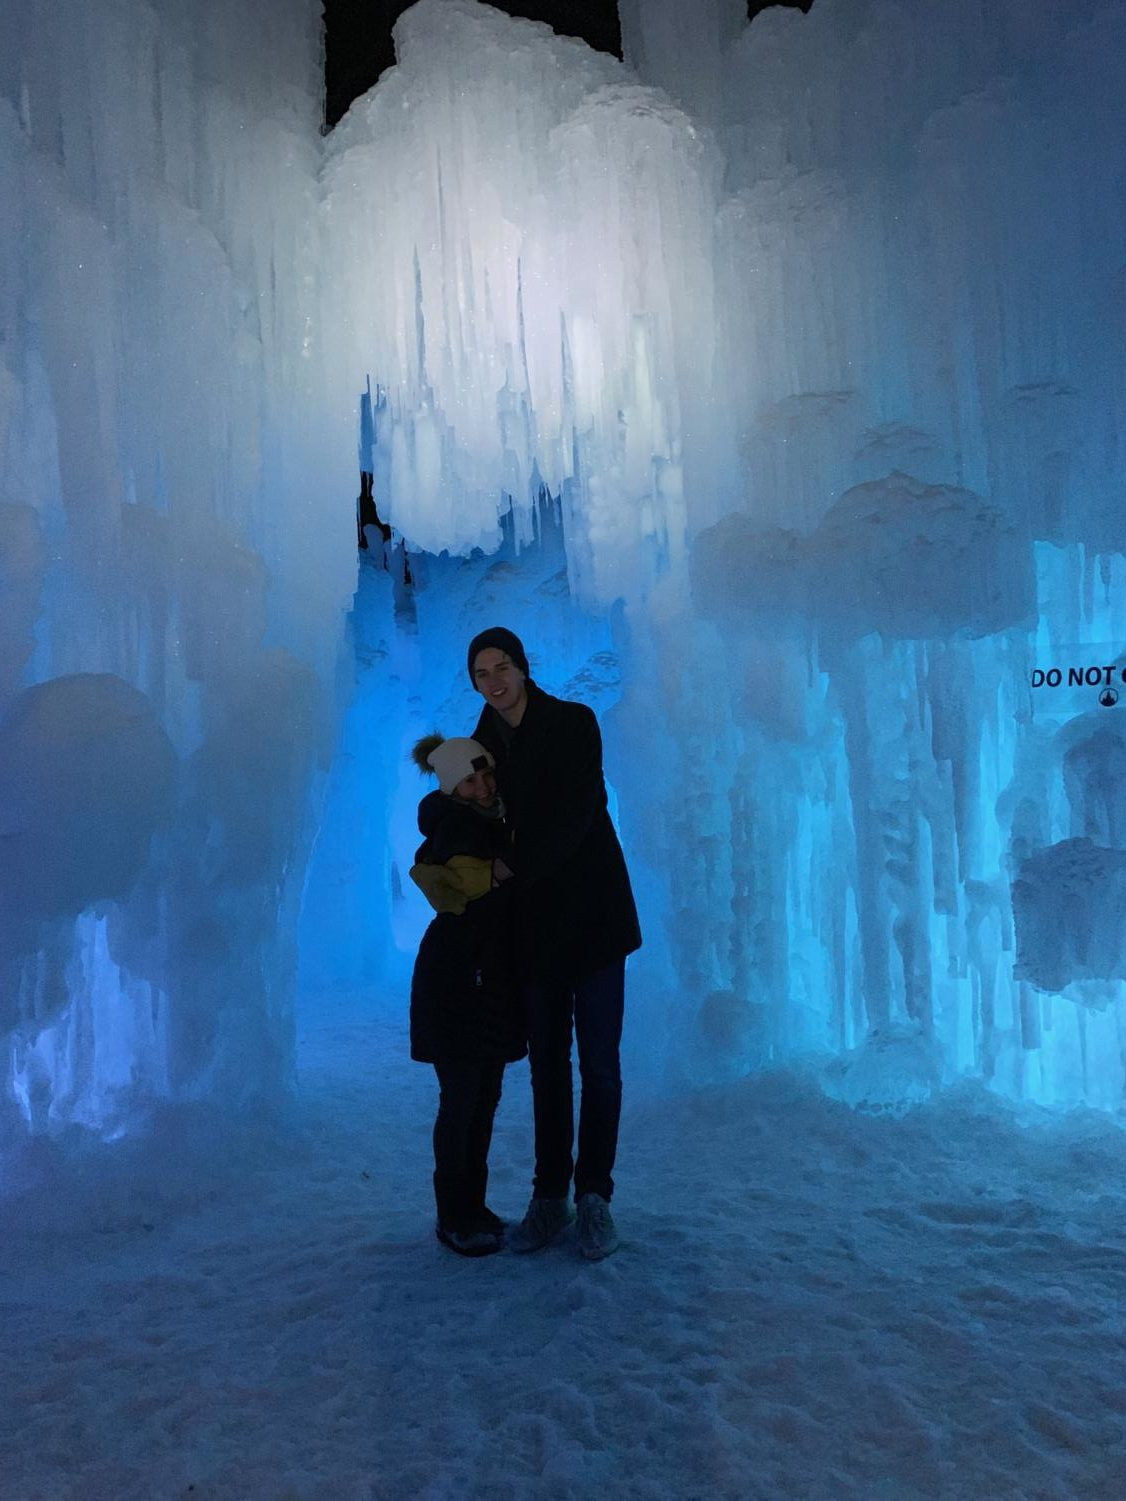 A young couple enjoys their time at the Ice Castles in Excelsior